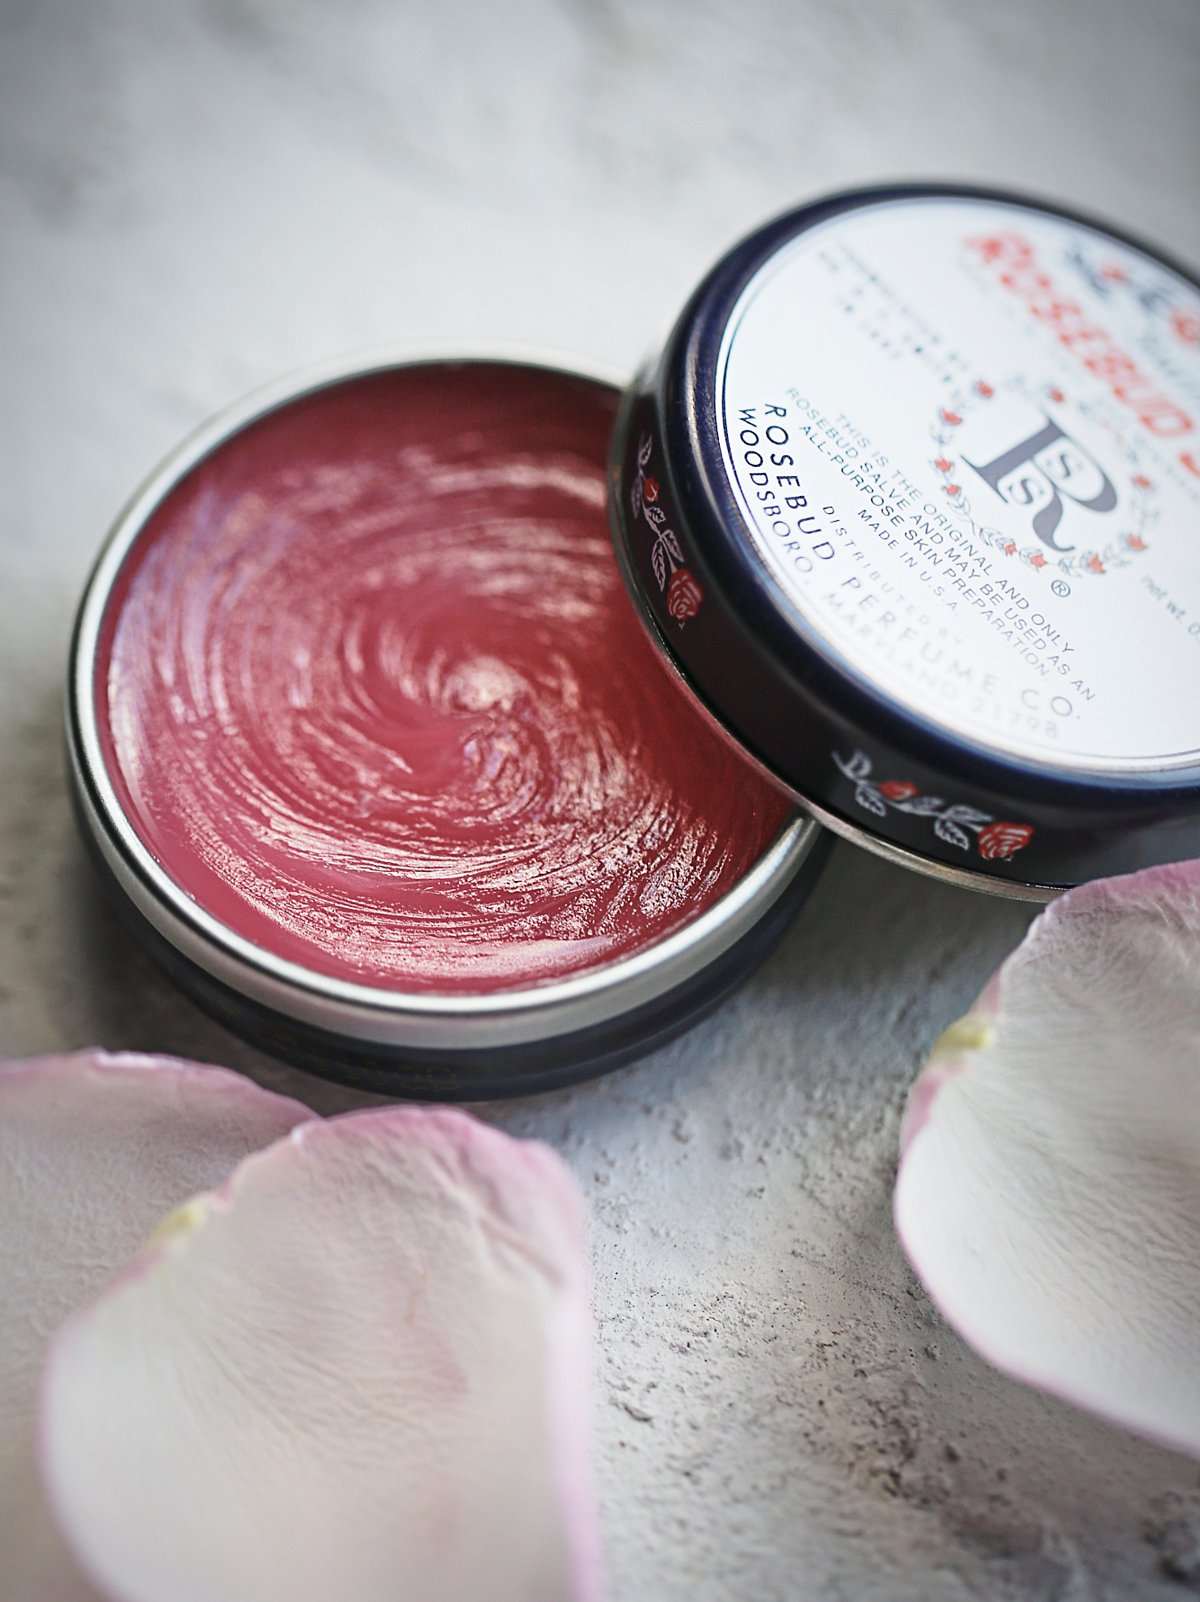 Smith's Rosebud Lip Salve